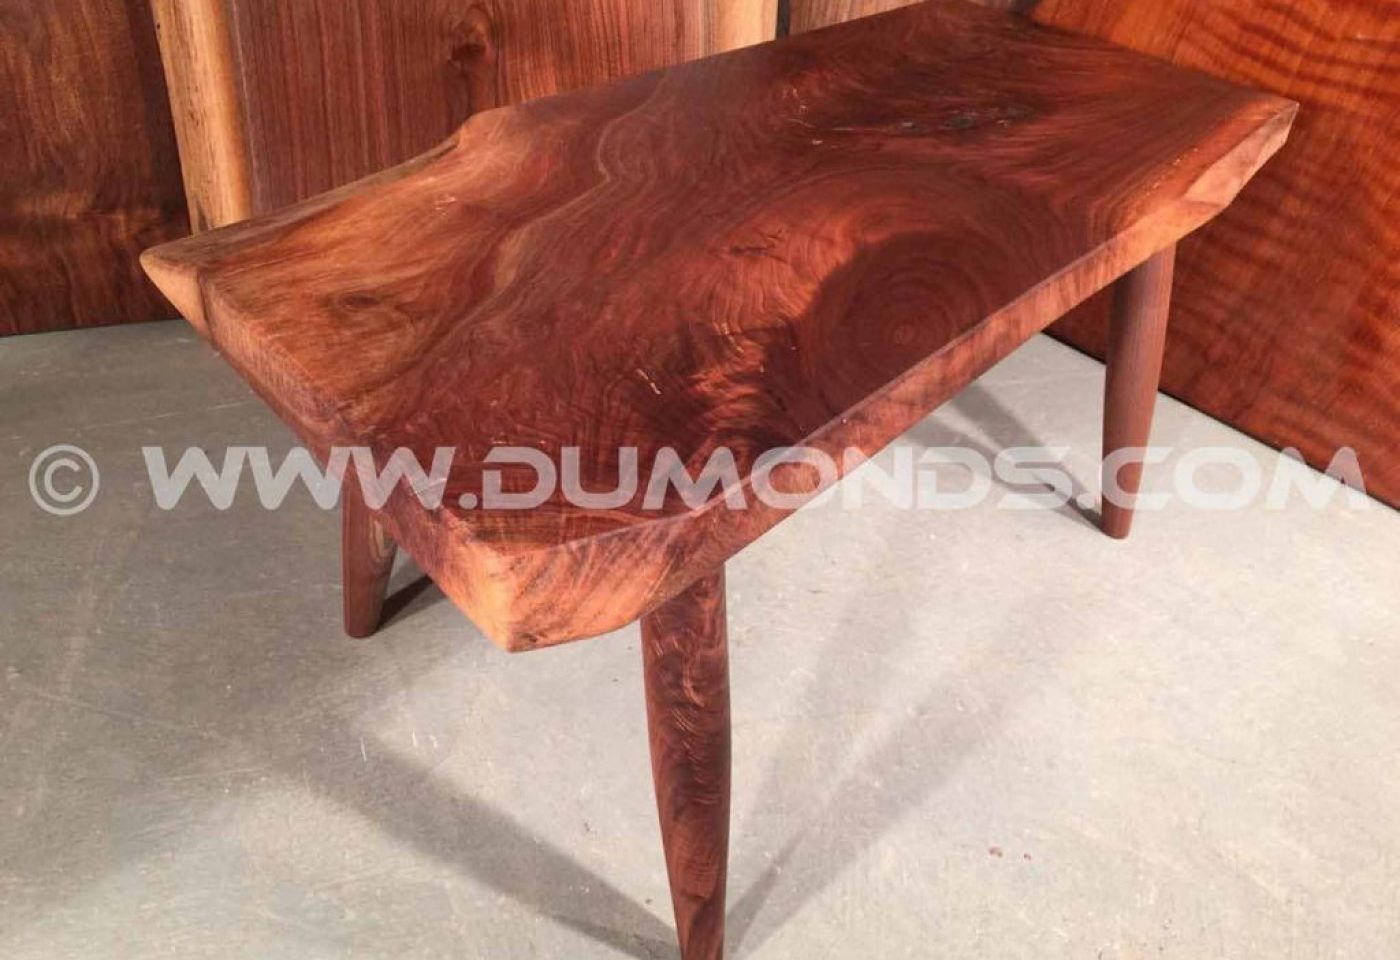 WALNUT TABLE WITH SPINDLE LEGS